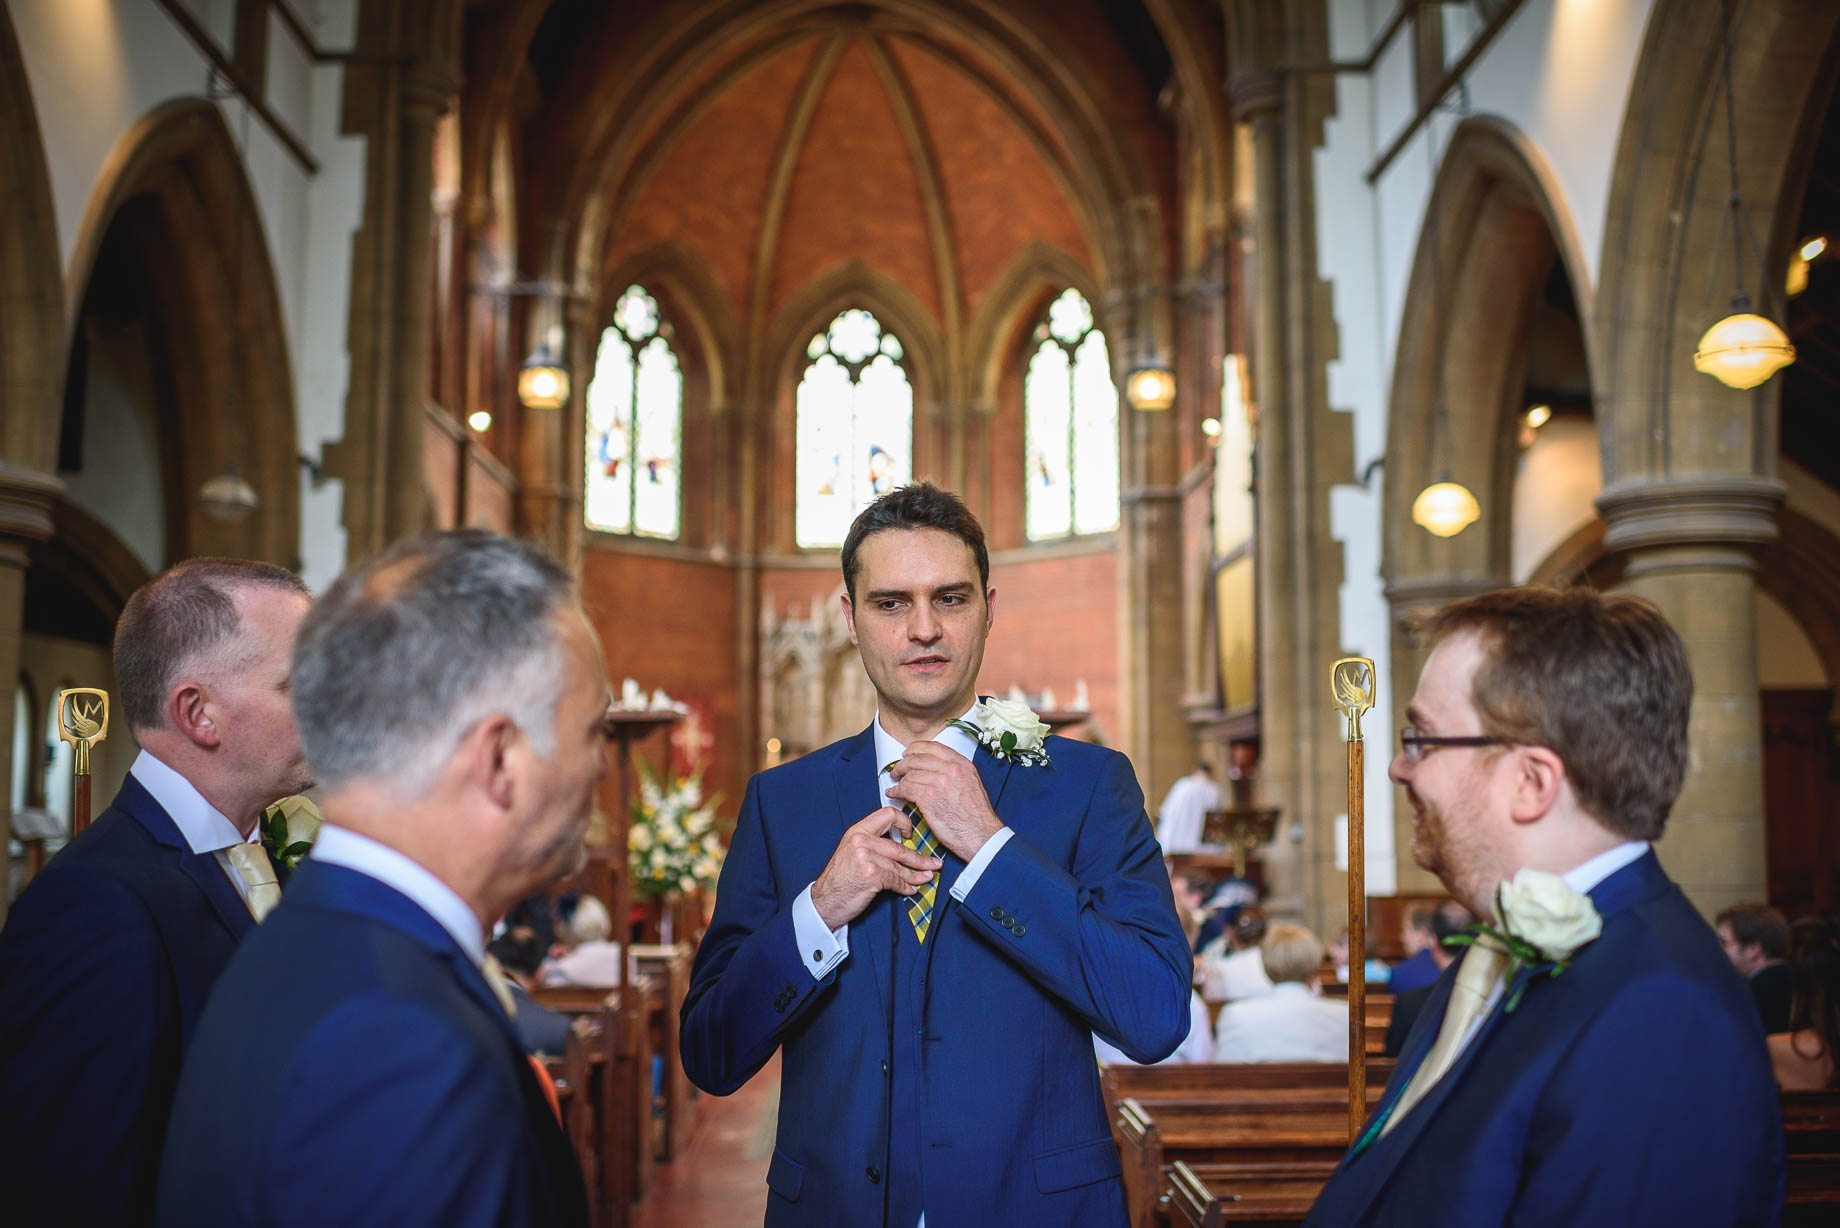 Hertfordshire wedding photography - Sarah and Stephen by Guy Collier Photography (51 of 161)